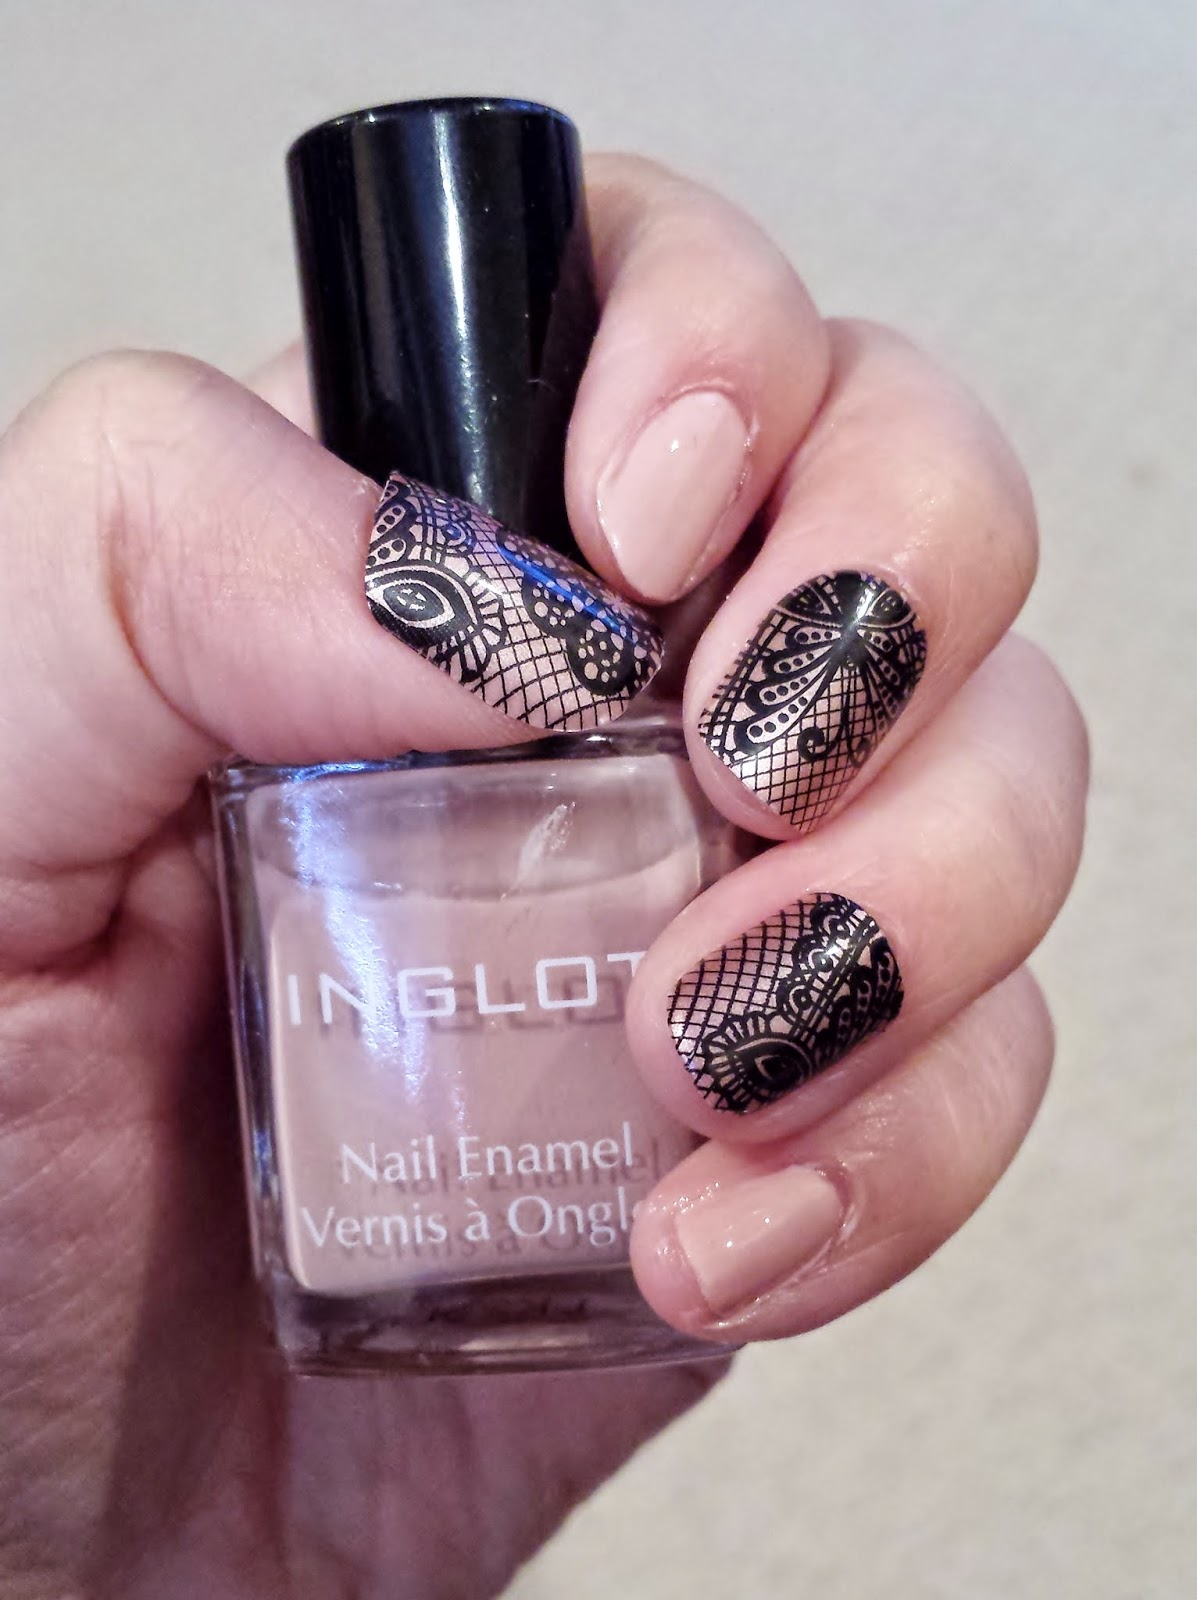 Just J: imPress press-on nail manicure from Broadway Nails